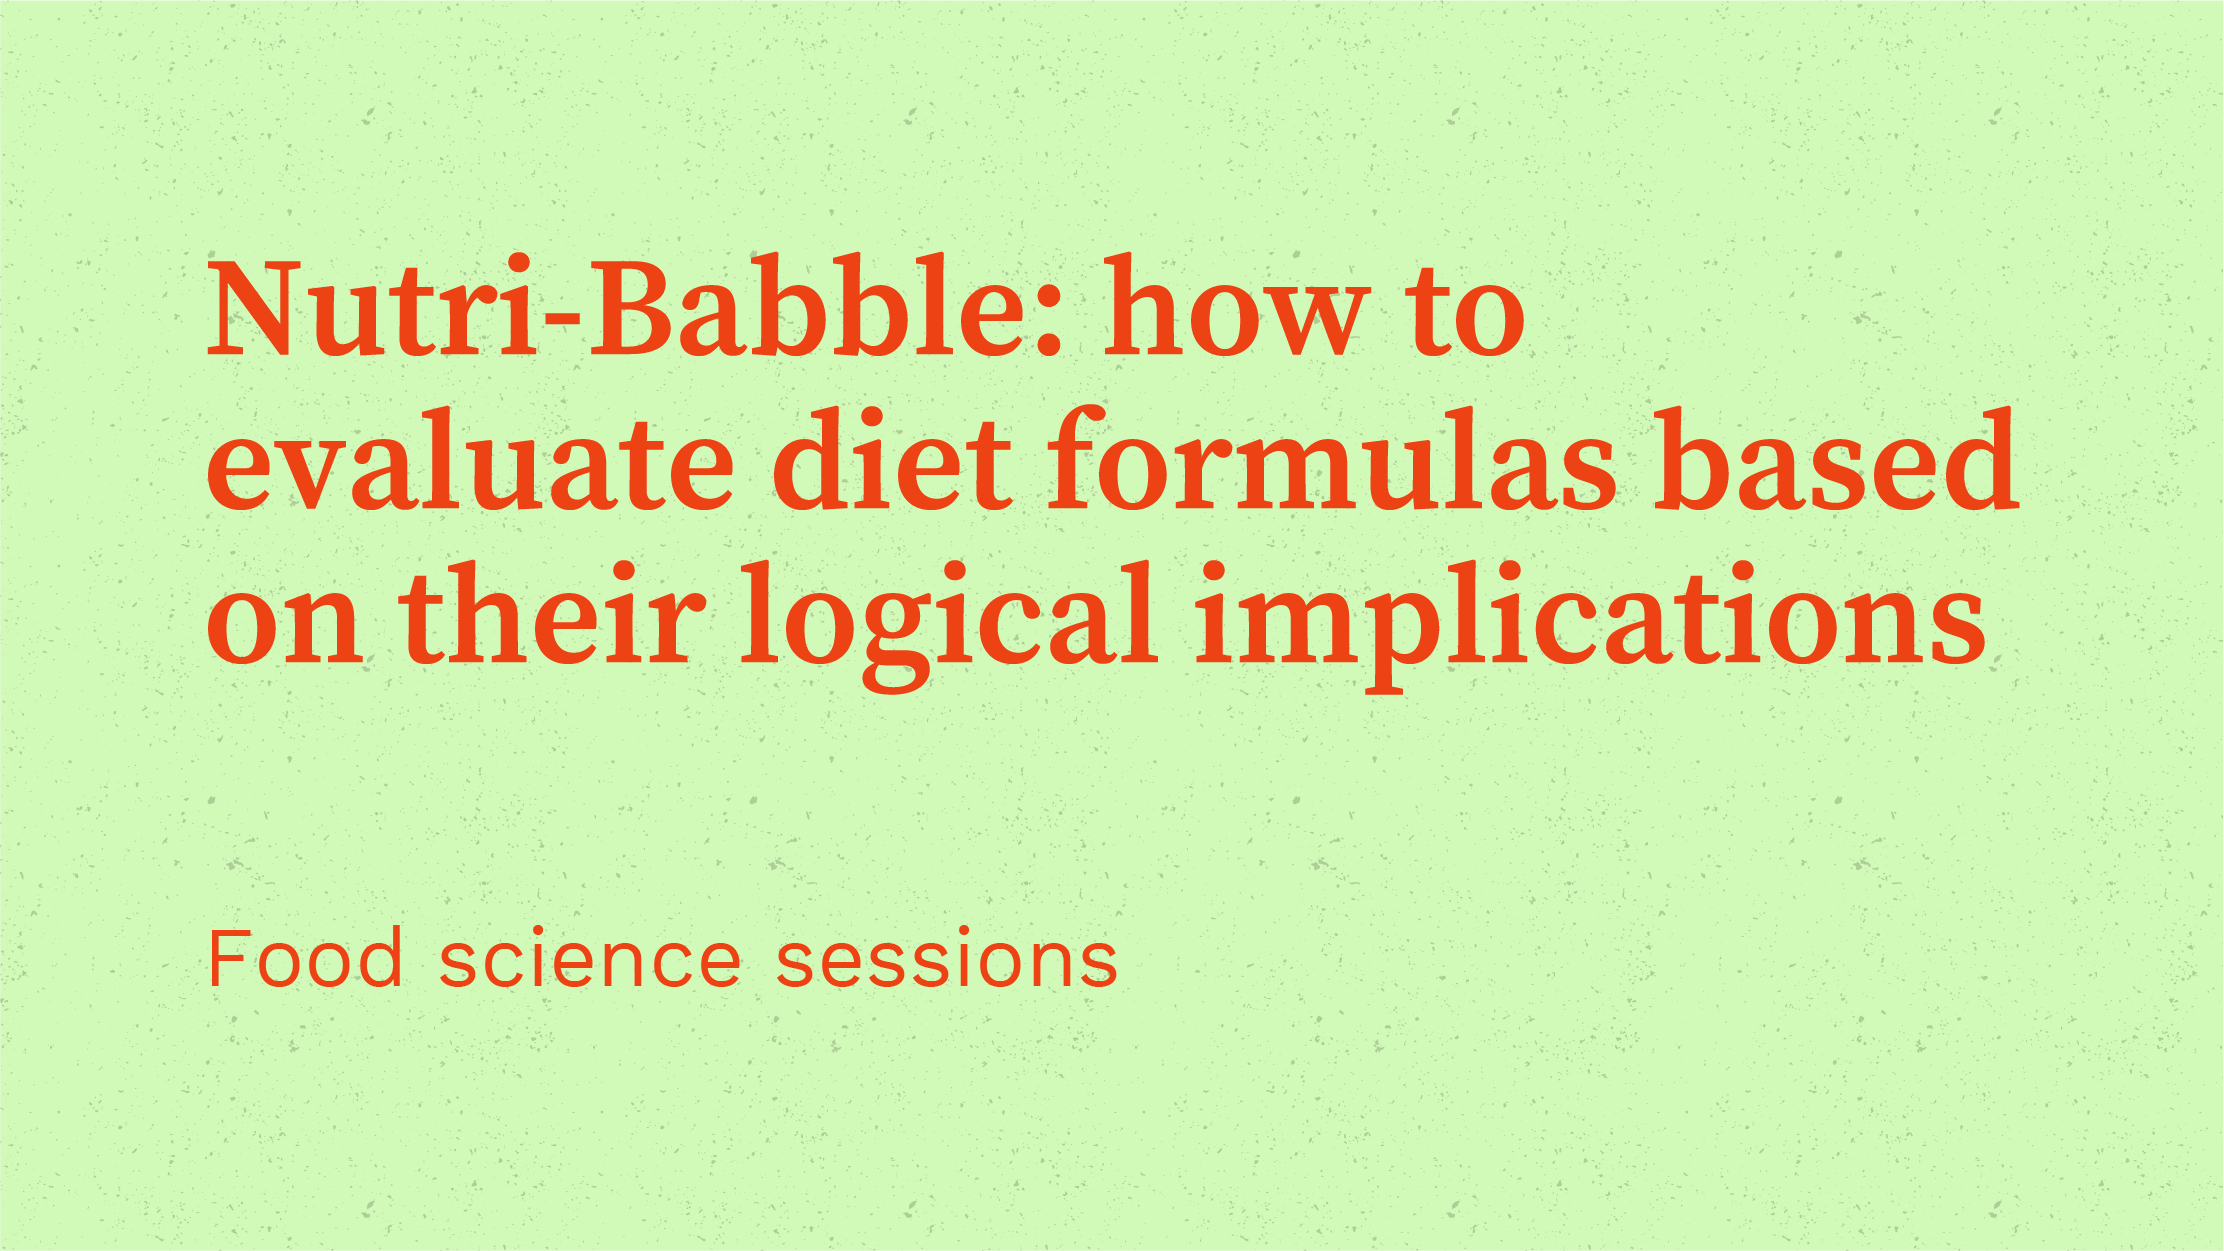 Nutri-Babble: how to evaluate diet formulas based on their logical implications